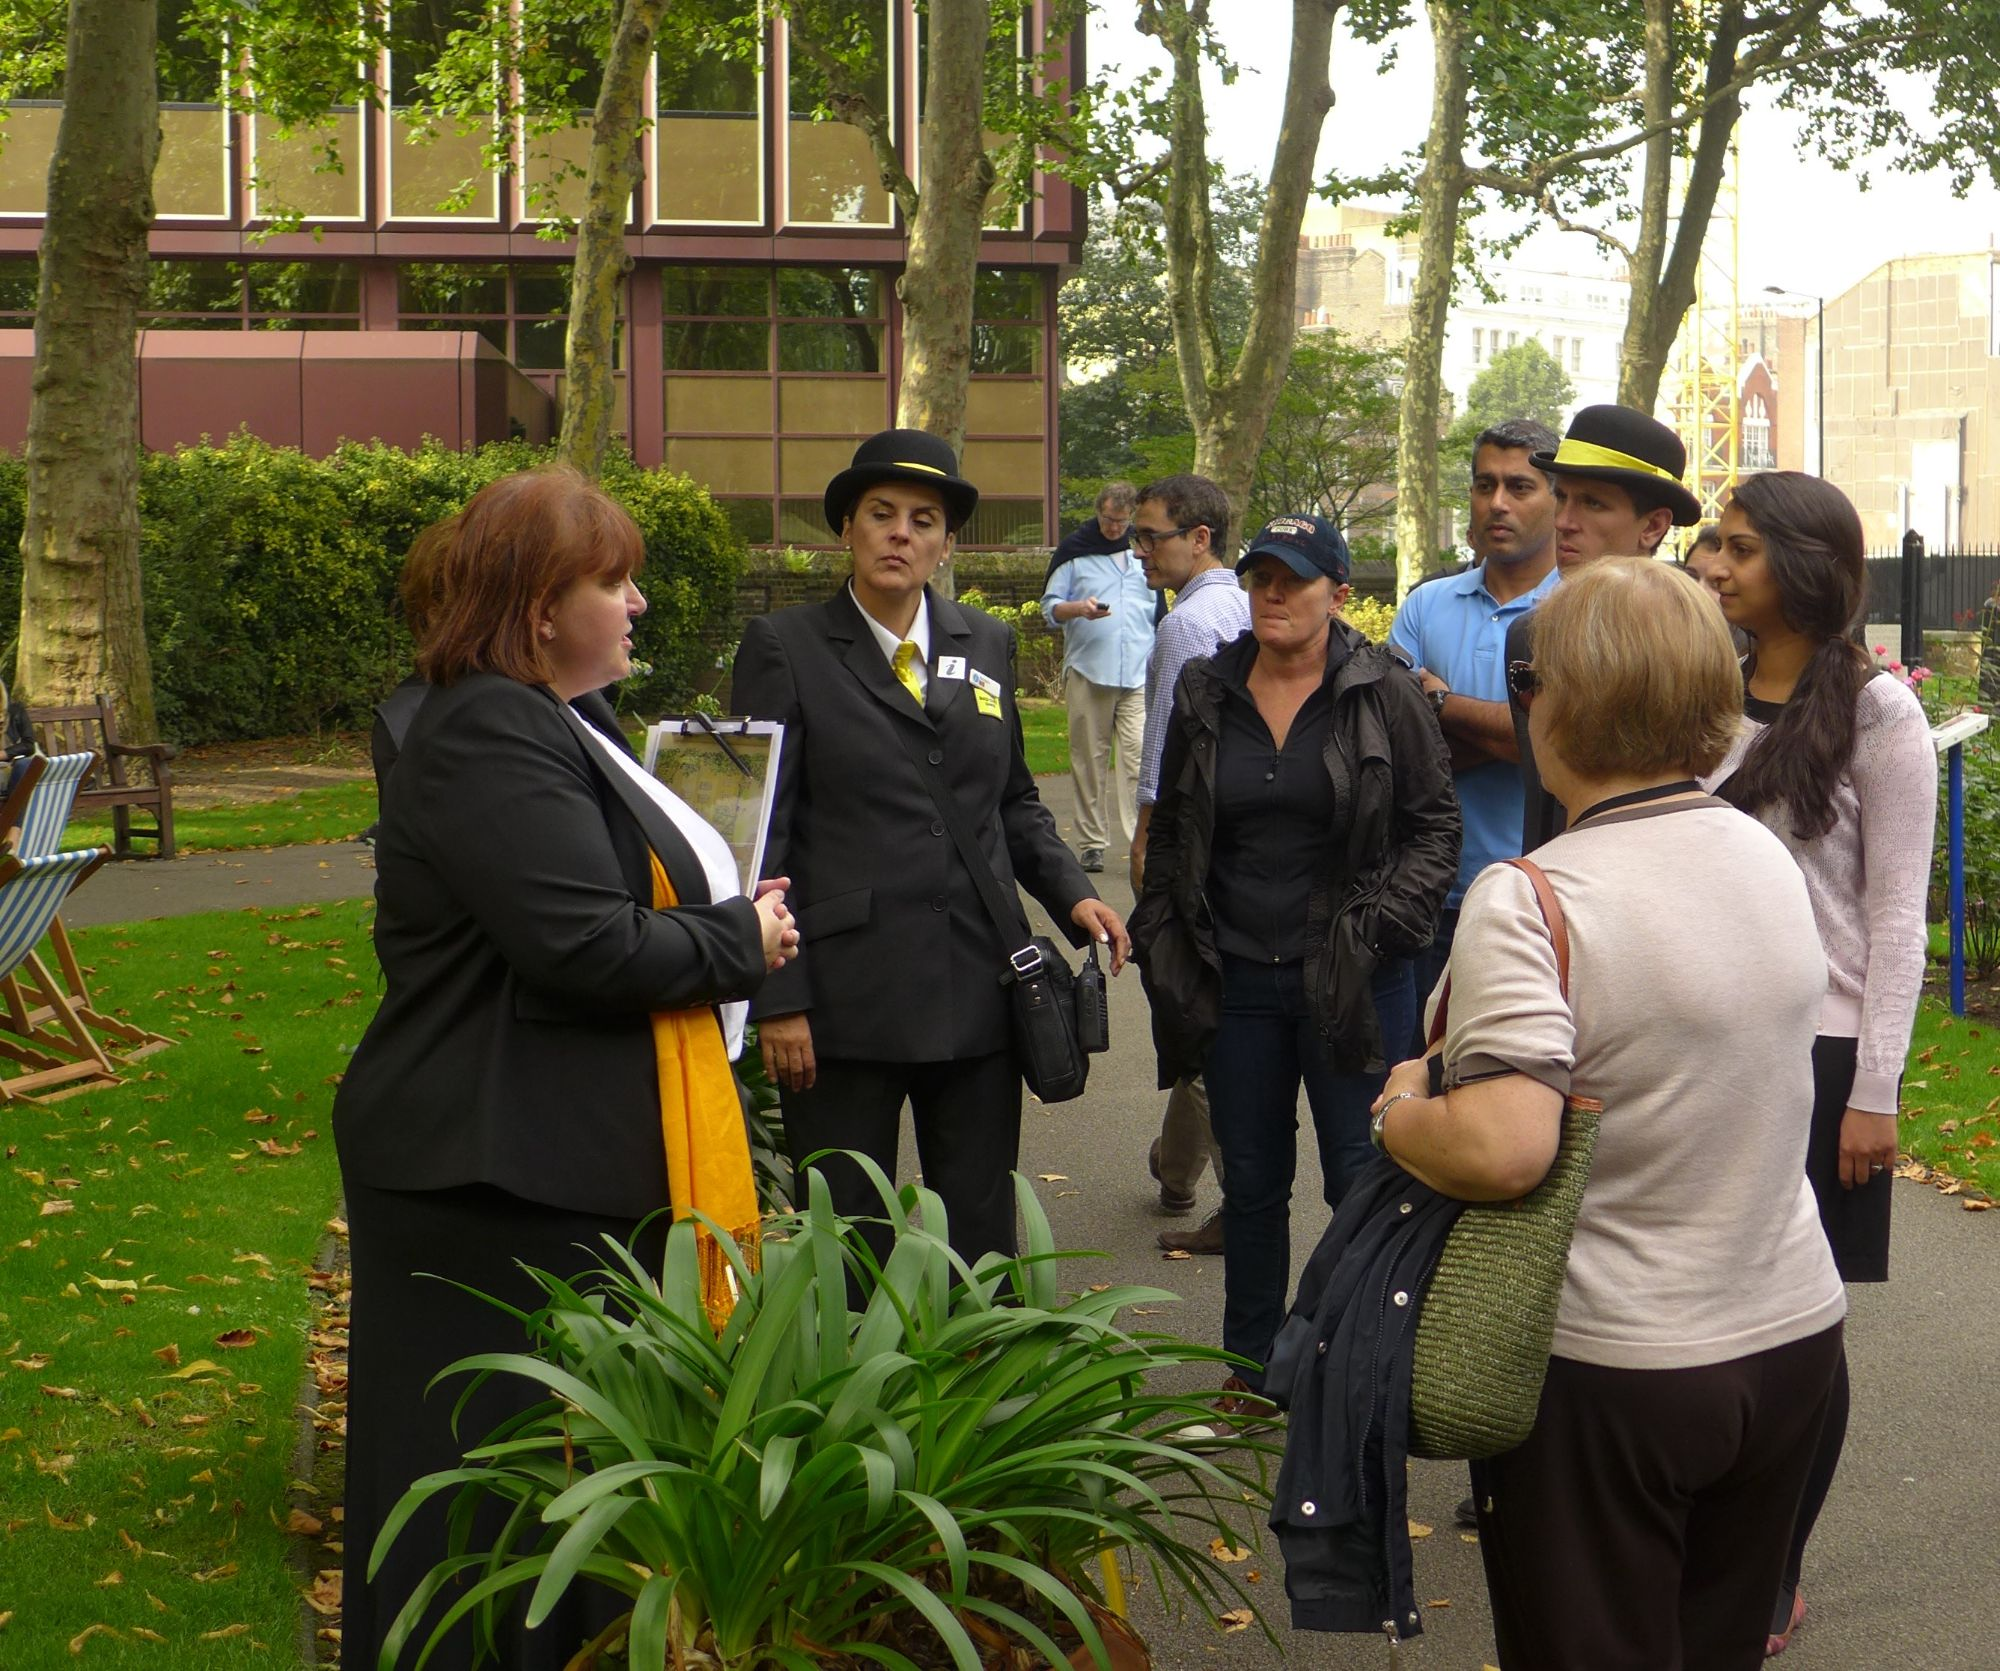 Guiding in a London park